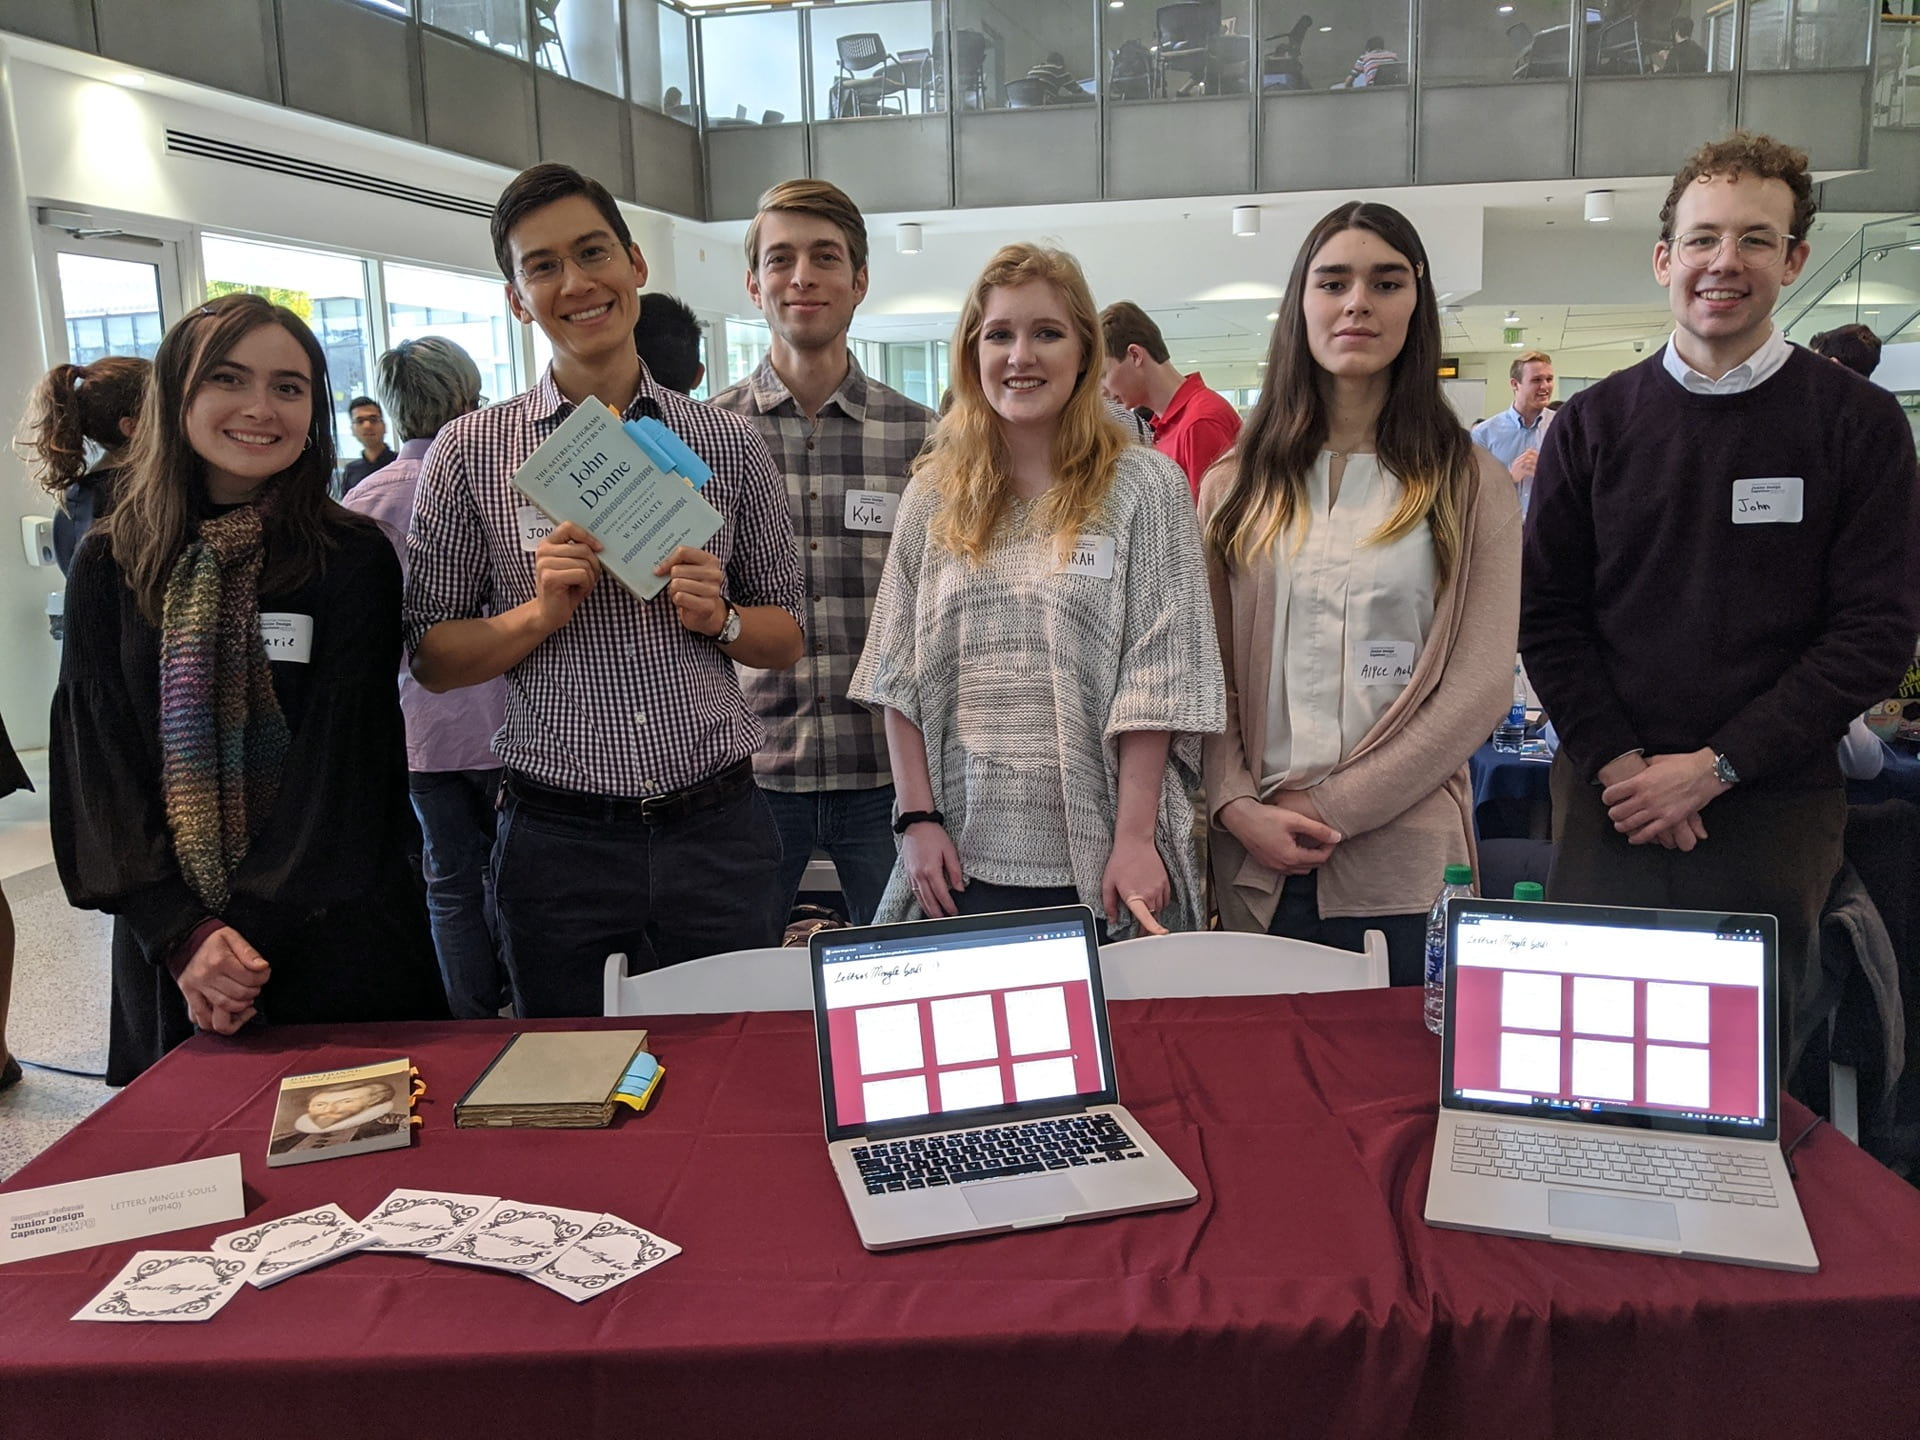 Students standing in front of table with computers ad paper at an academic expo